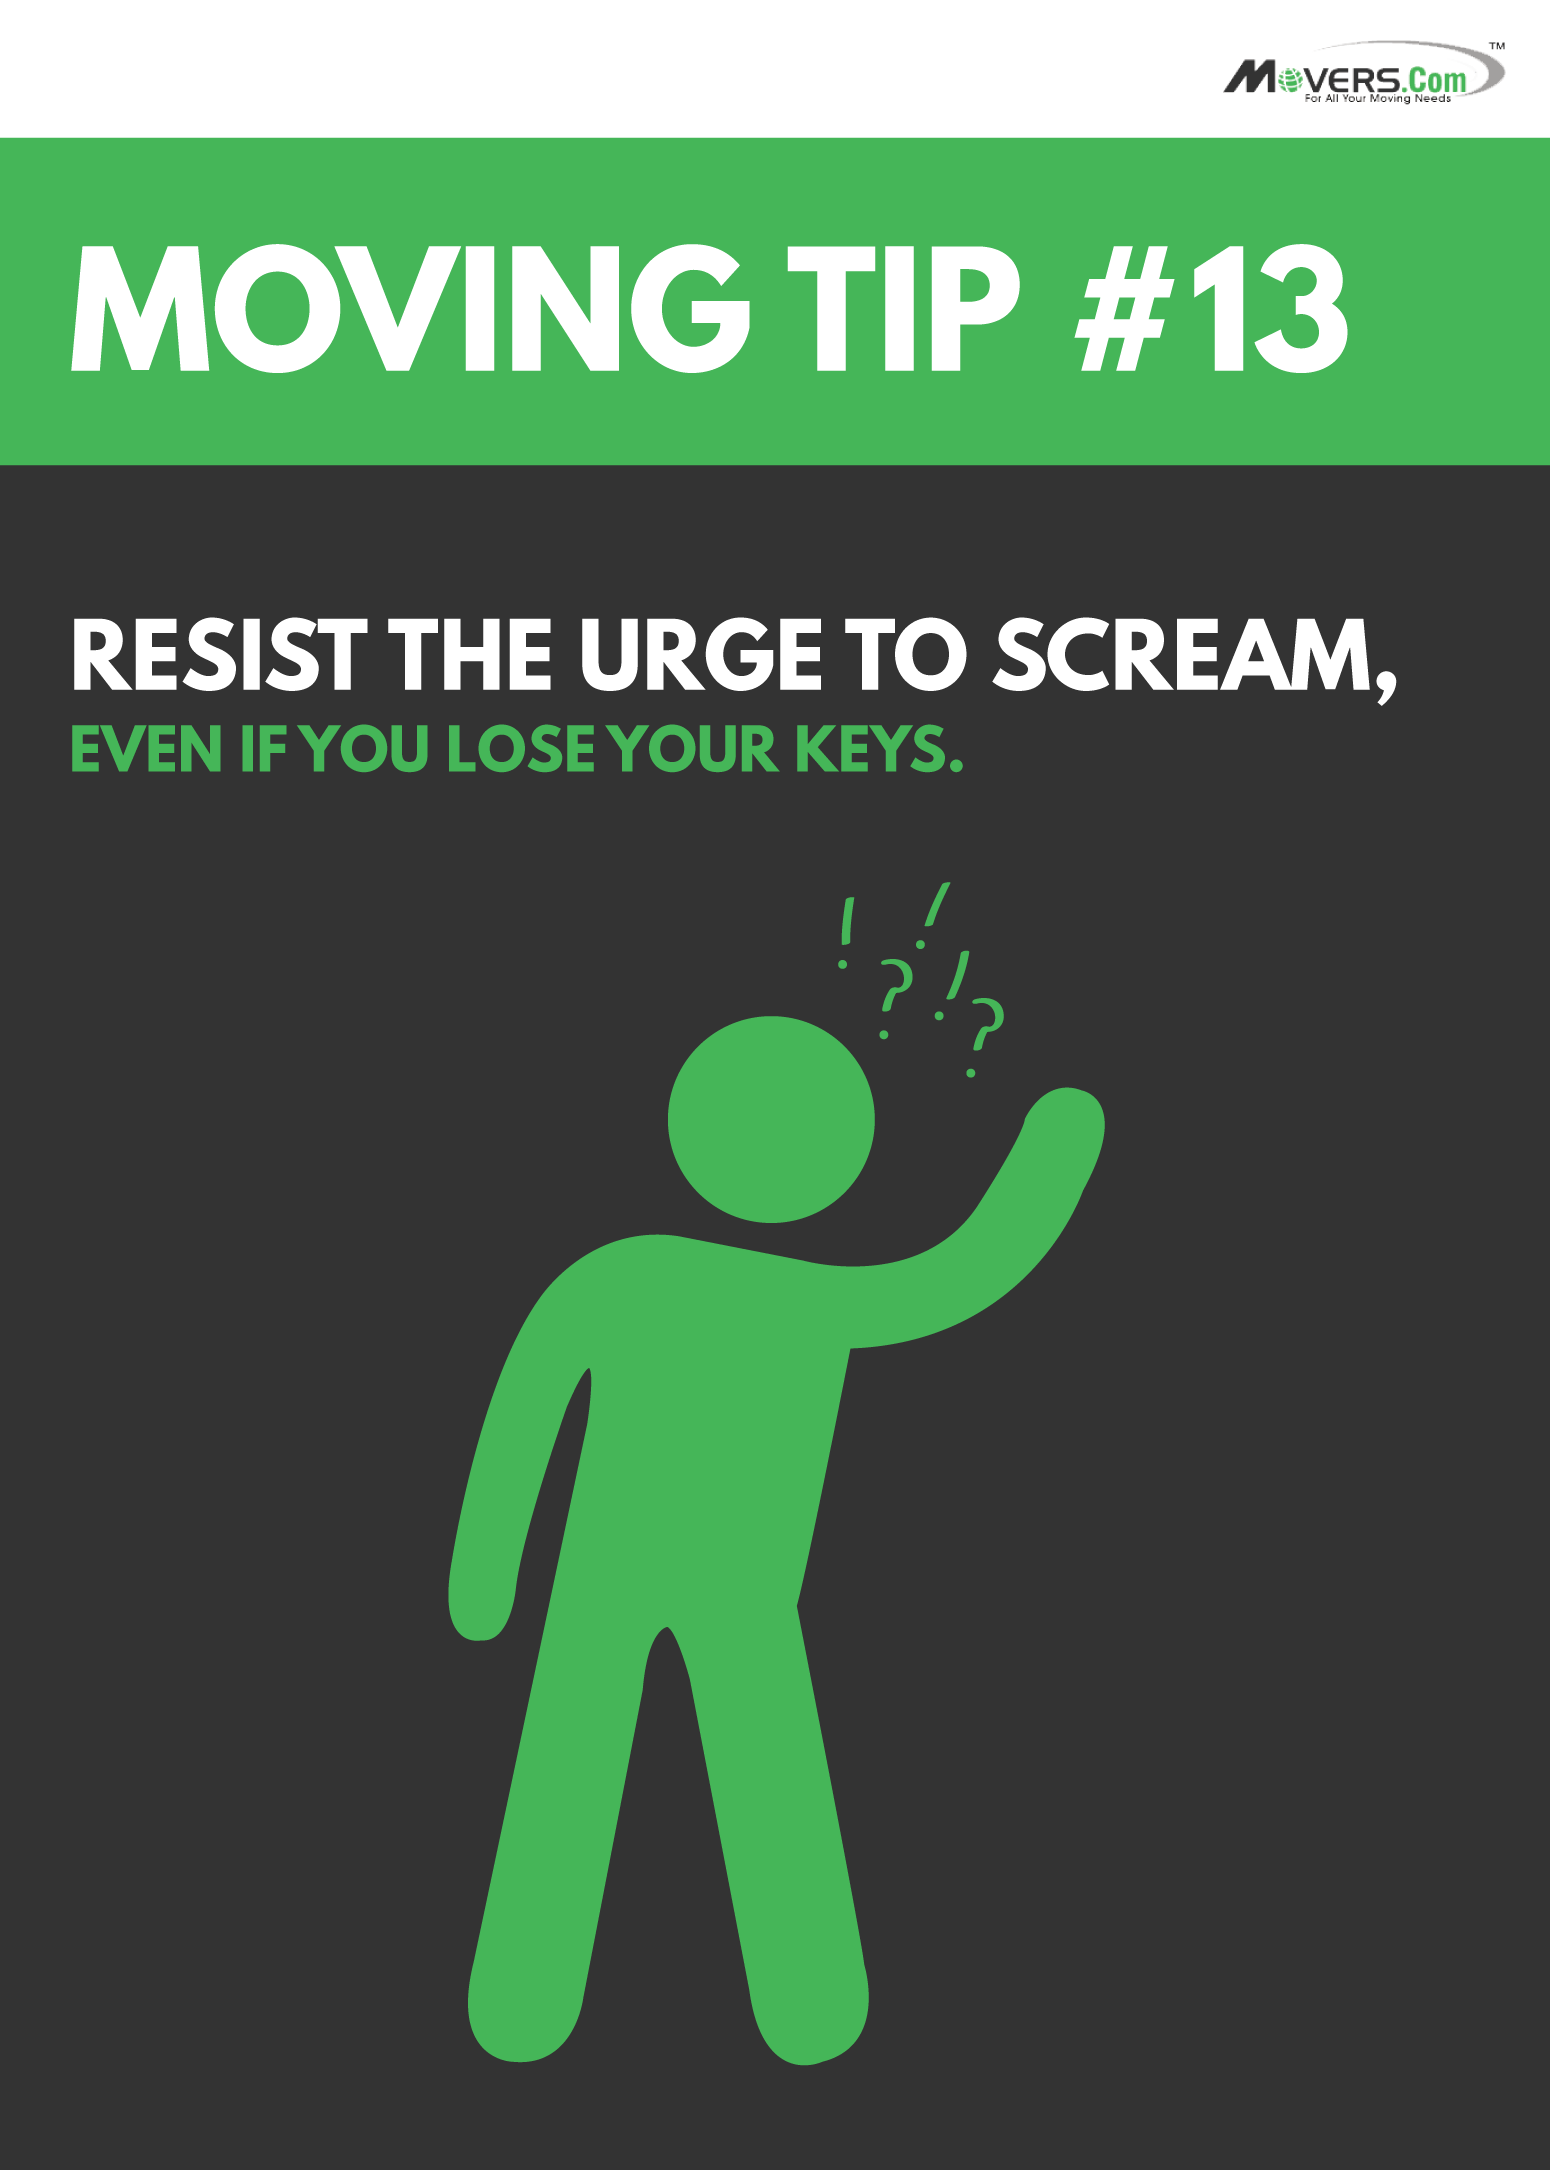 Movers.com - Moving Tip #13: Don't lose your cool... or your keys.